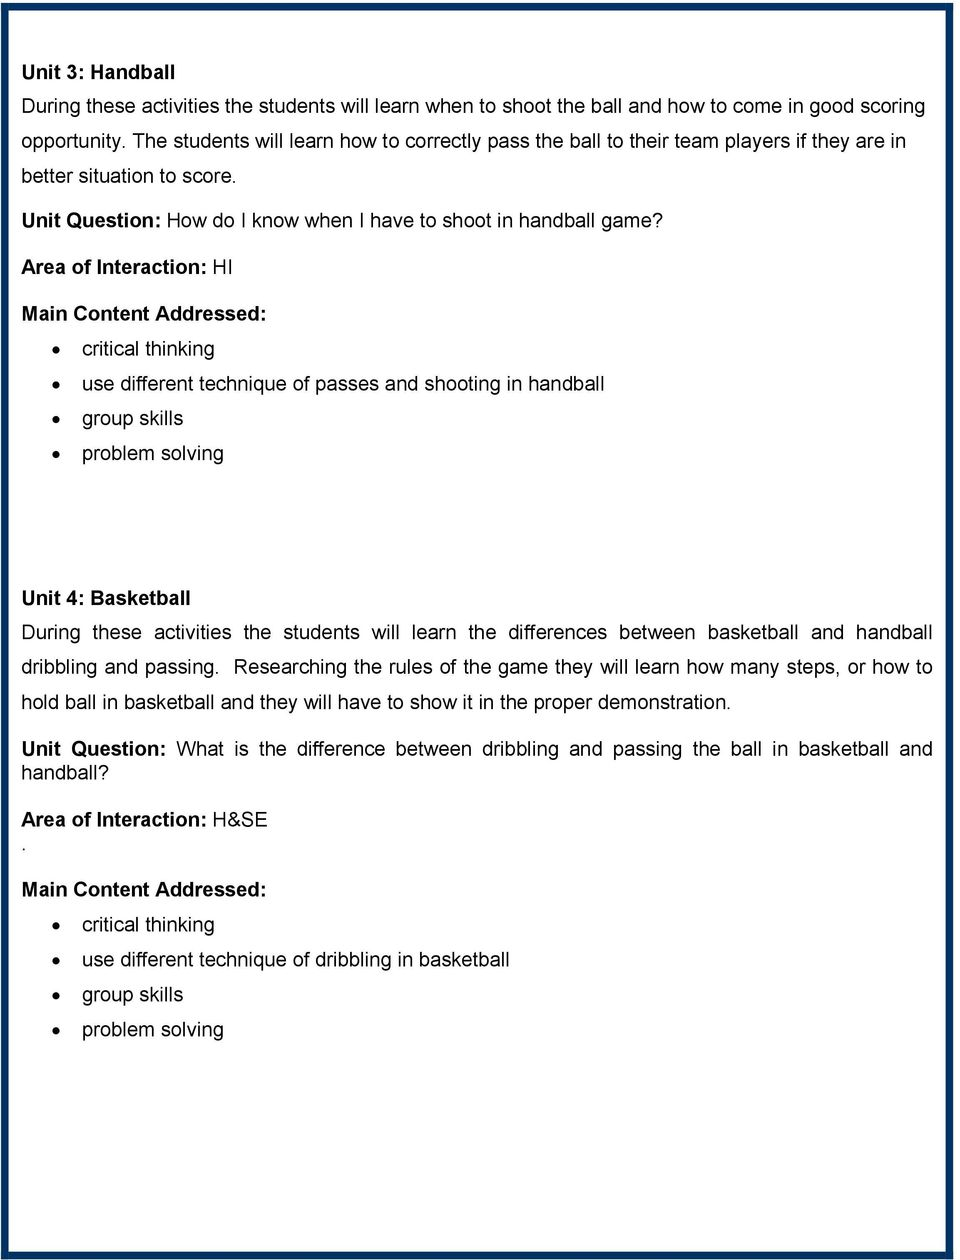 use different technique of passes and shooting in handball Unit 4: Basketball During these activities the students will learn the differences between basketball and handball dribbling and passing.